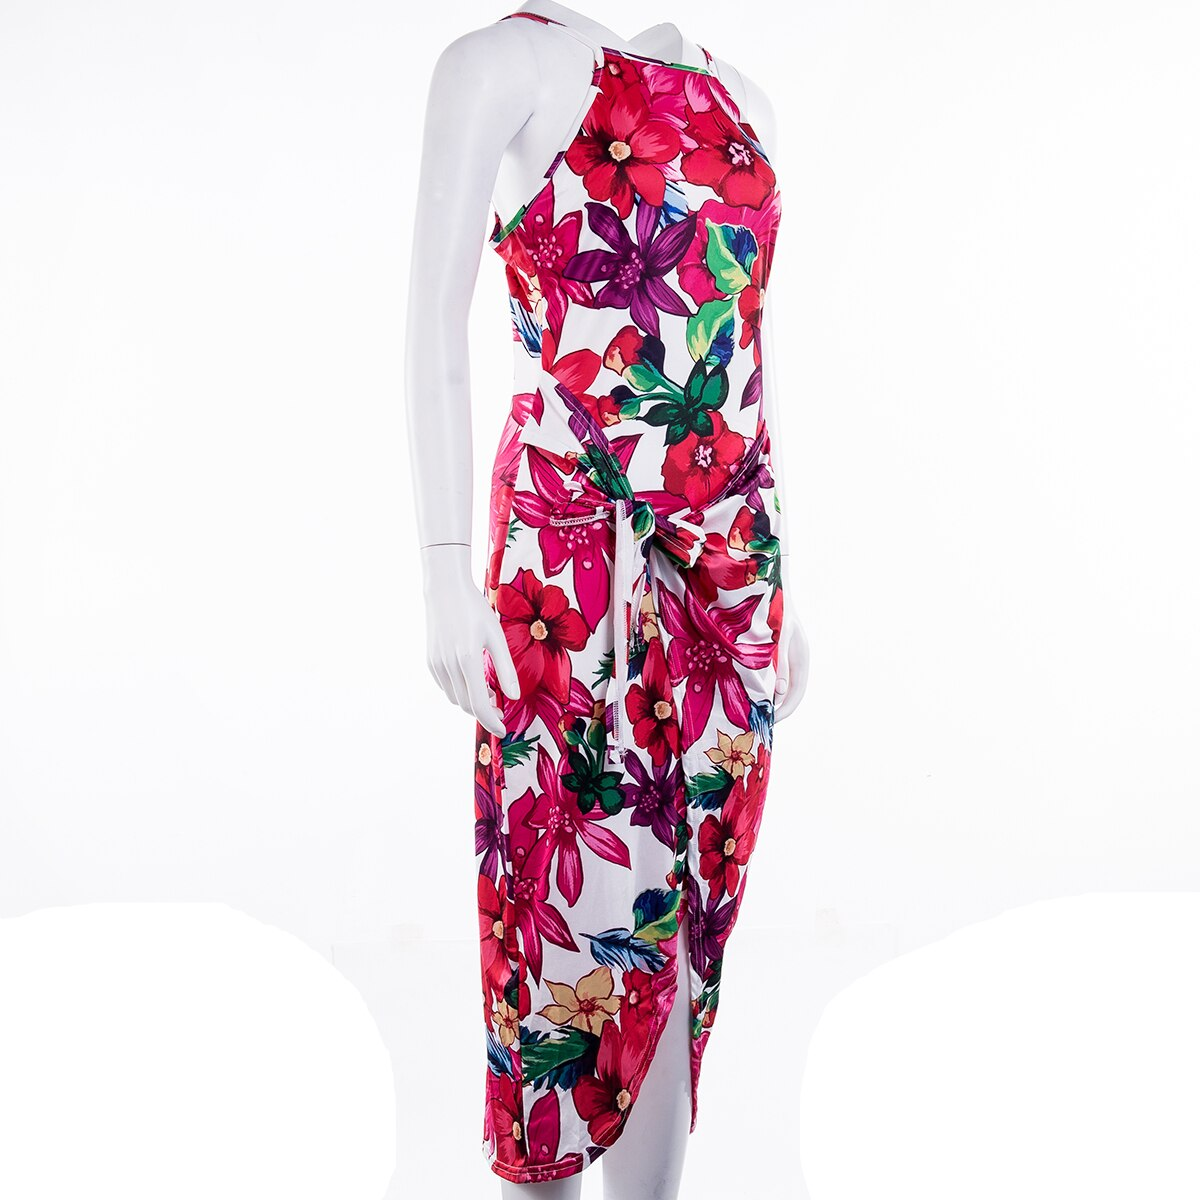 2020 Fashion Women Bohemian Floral Dress Summer Party Beach Holiday Sleeveless Sexy Slim Fit Dresses Sundress